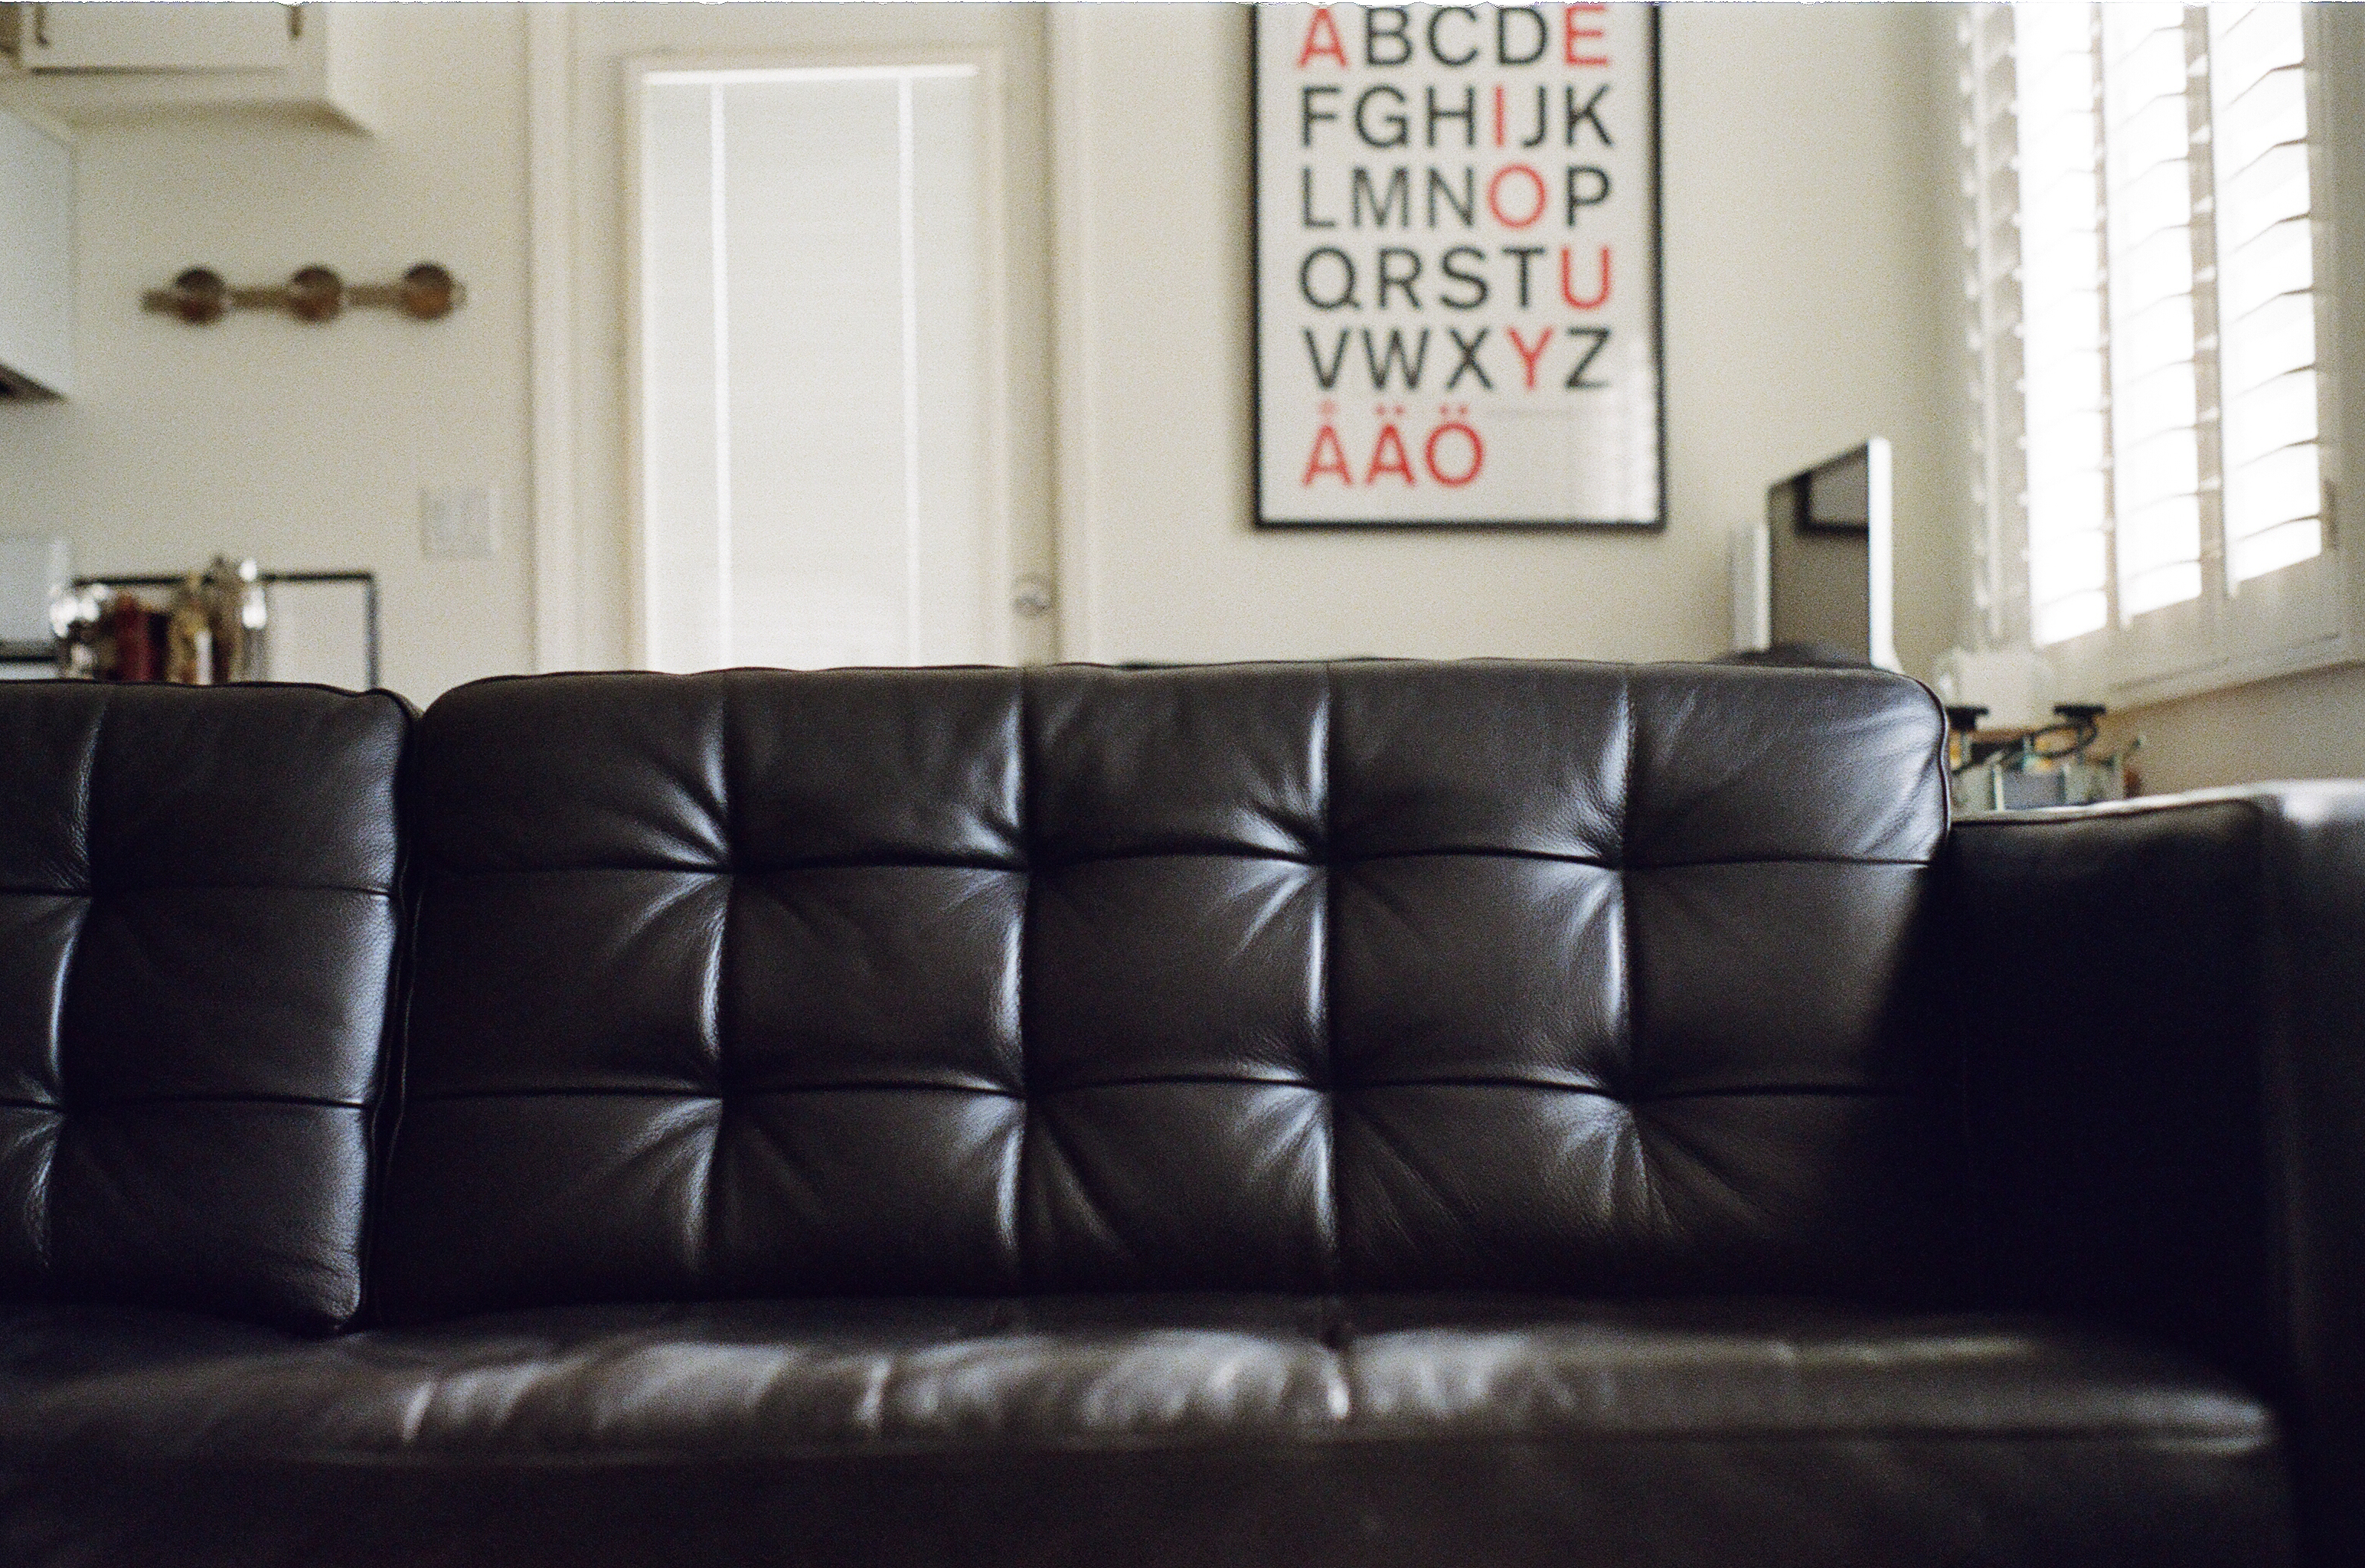 File:Couch-furniture-living-room-sofa (24300293356).jpg - Wikimedia ...